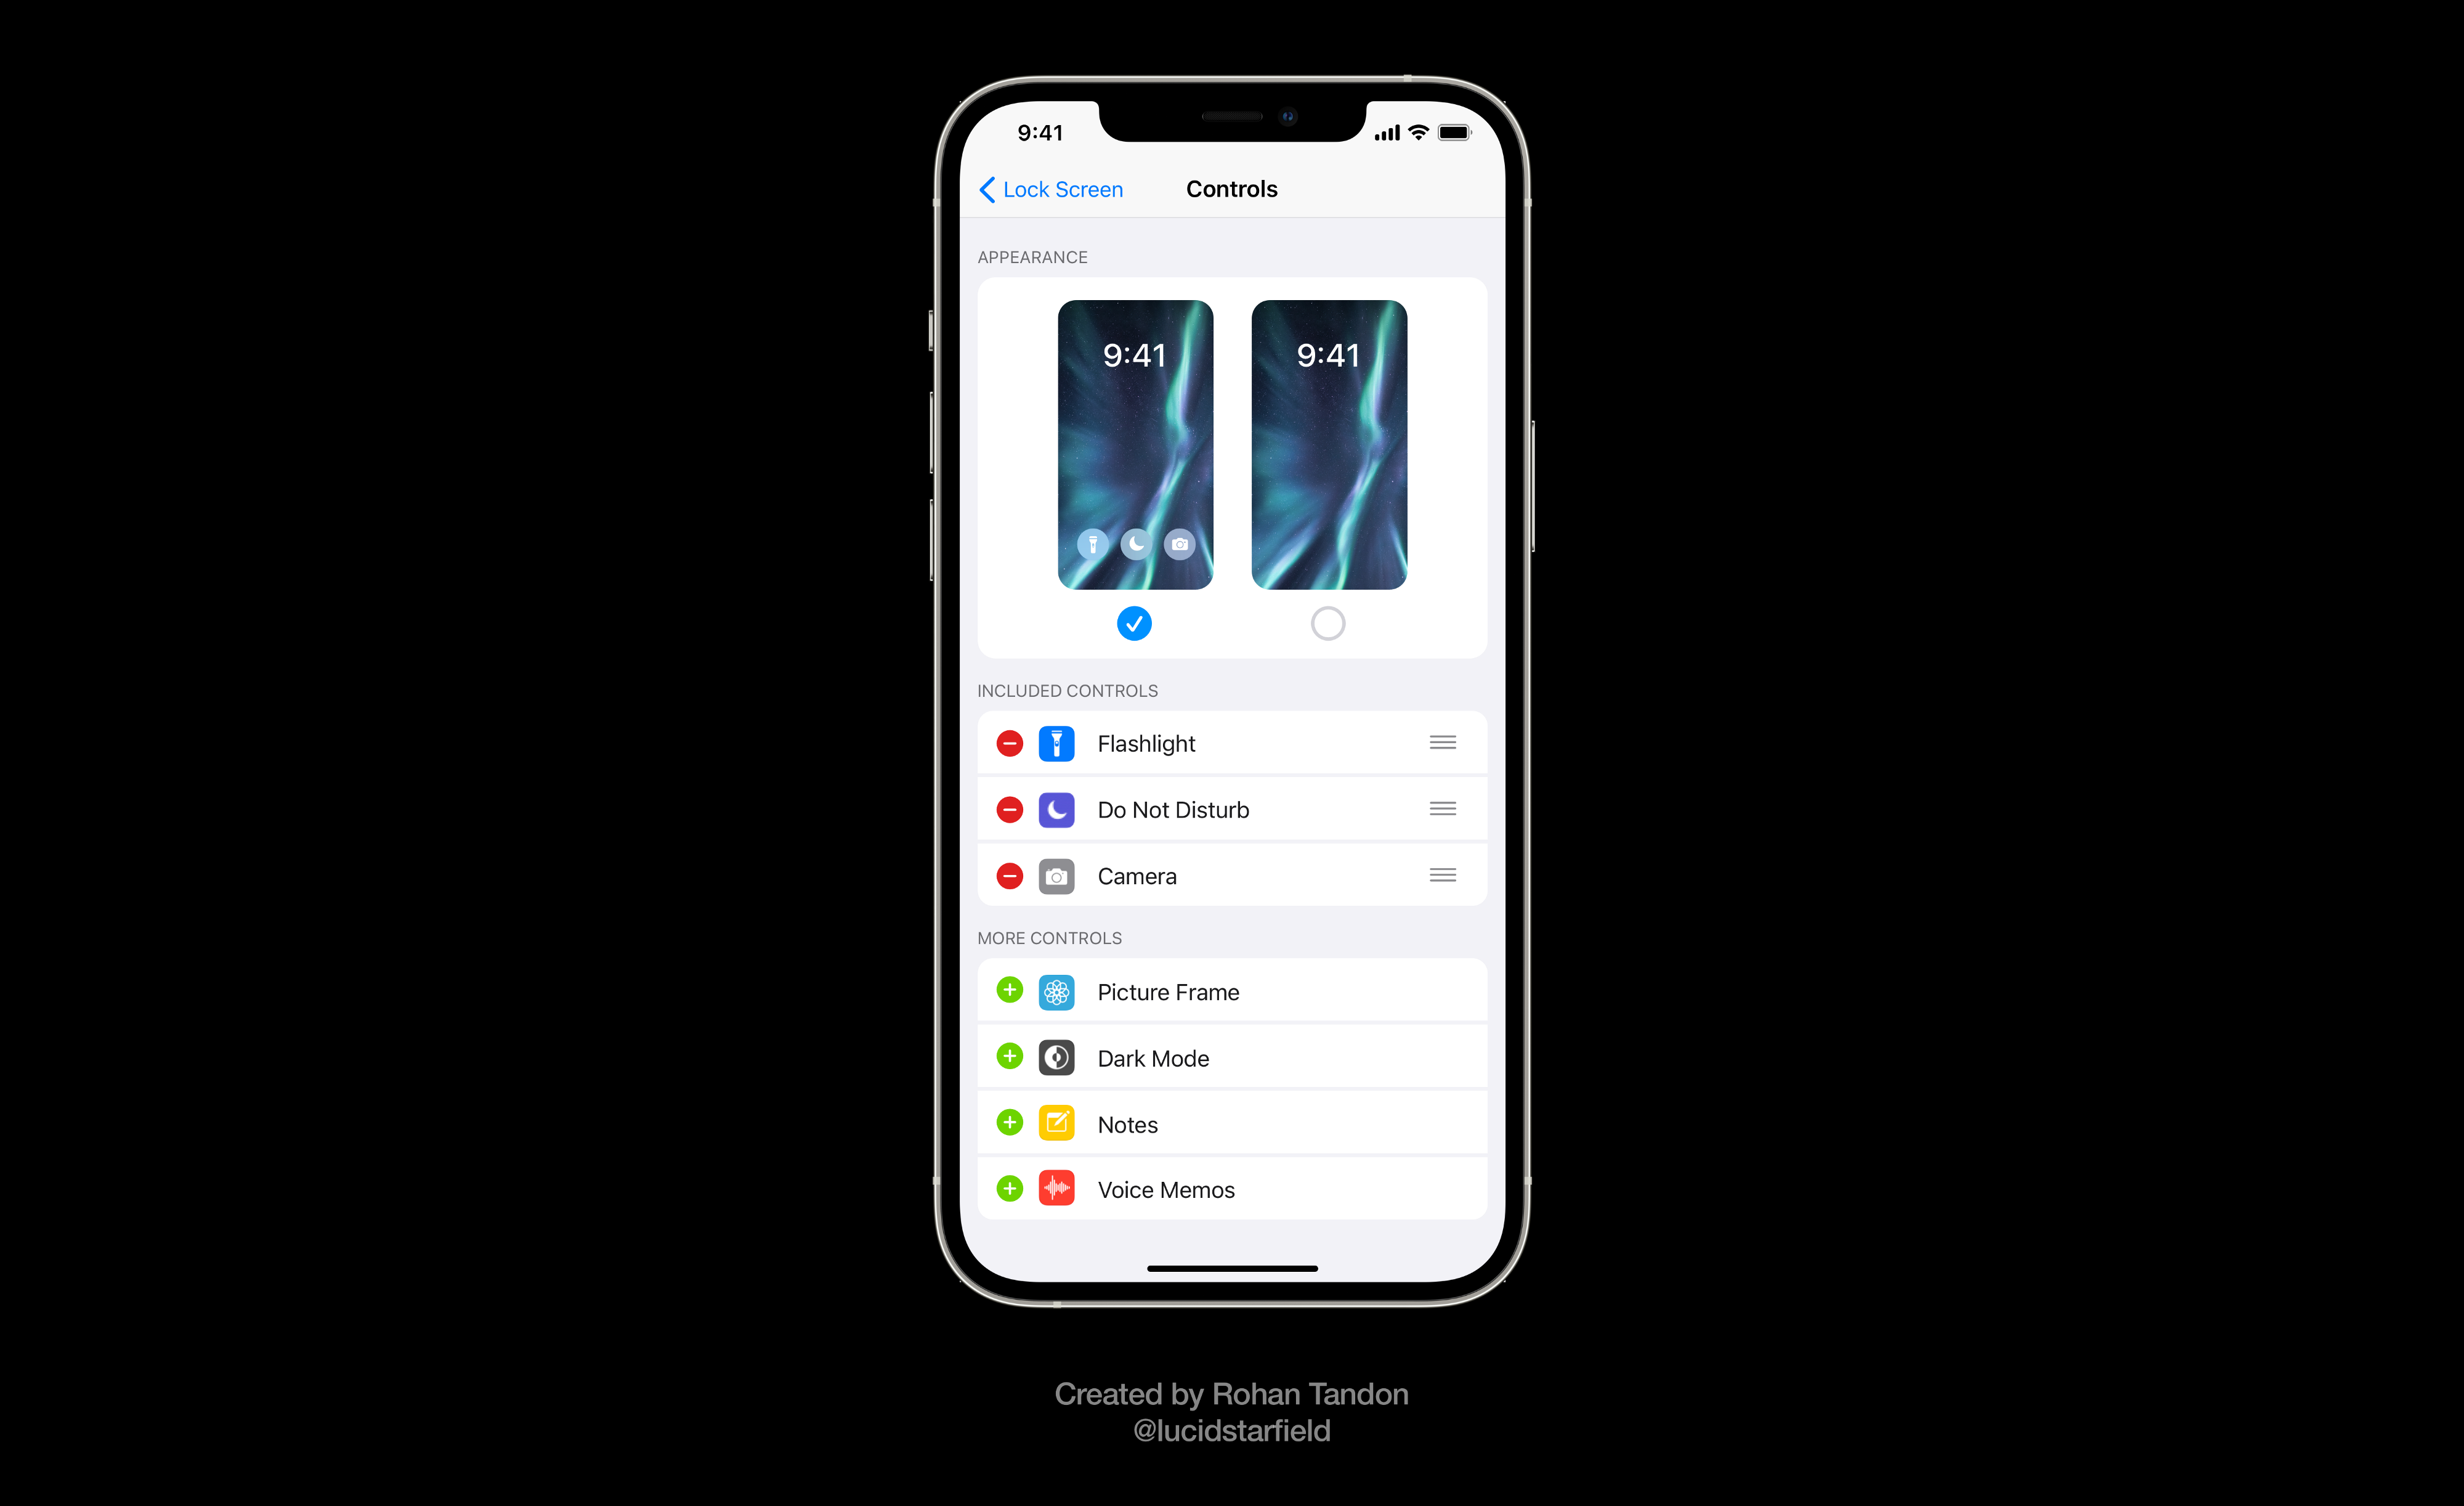 iOS 15 Aurora imagines a new page in the settings app that would allow users to swap the Lock Screen controls from a wide range of options.